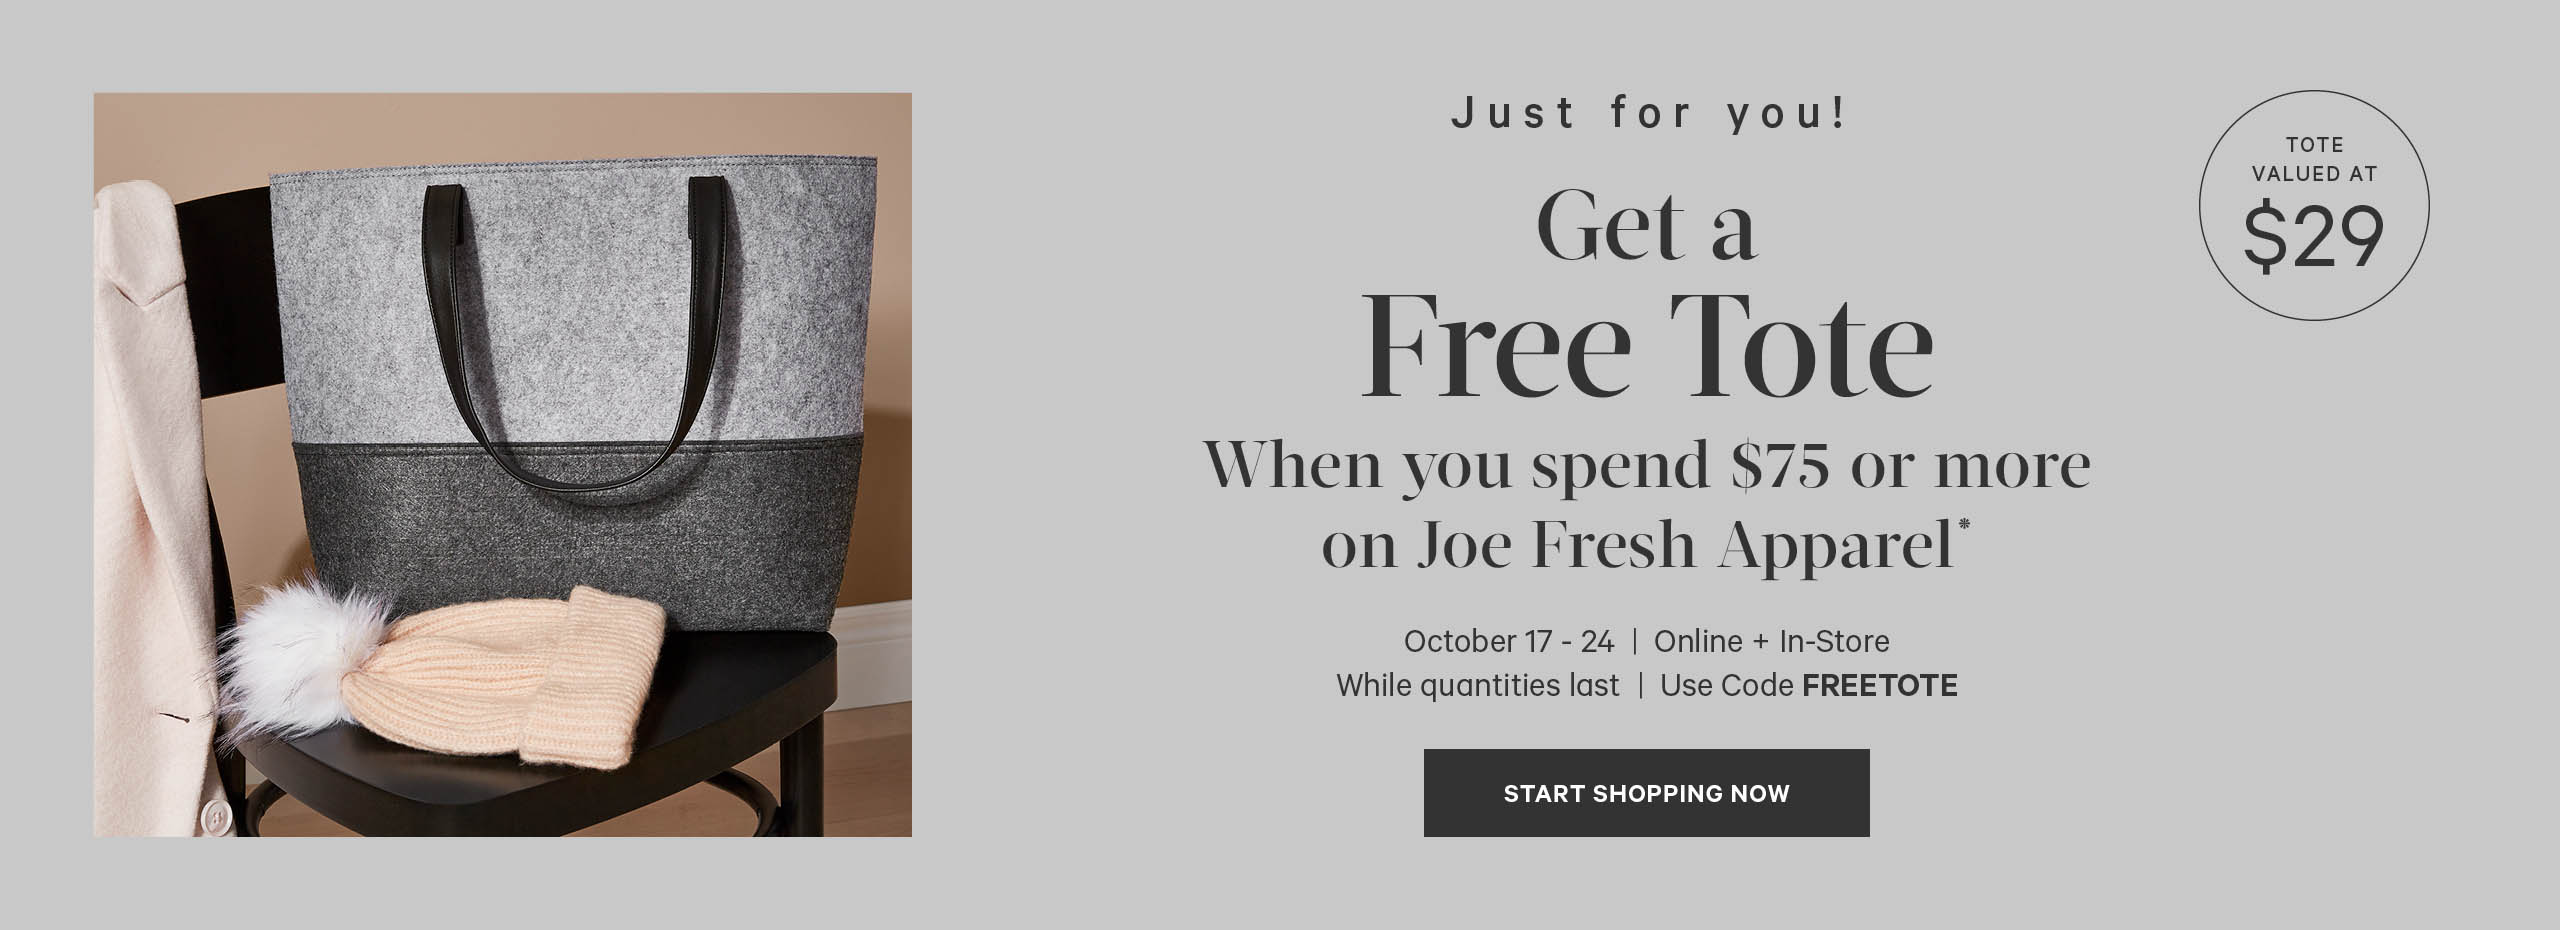 Get a free tote when you spend 75 dollars or more on Joe Fresh Apparel